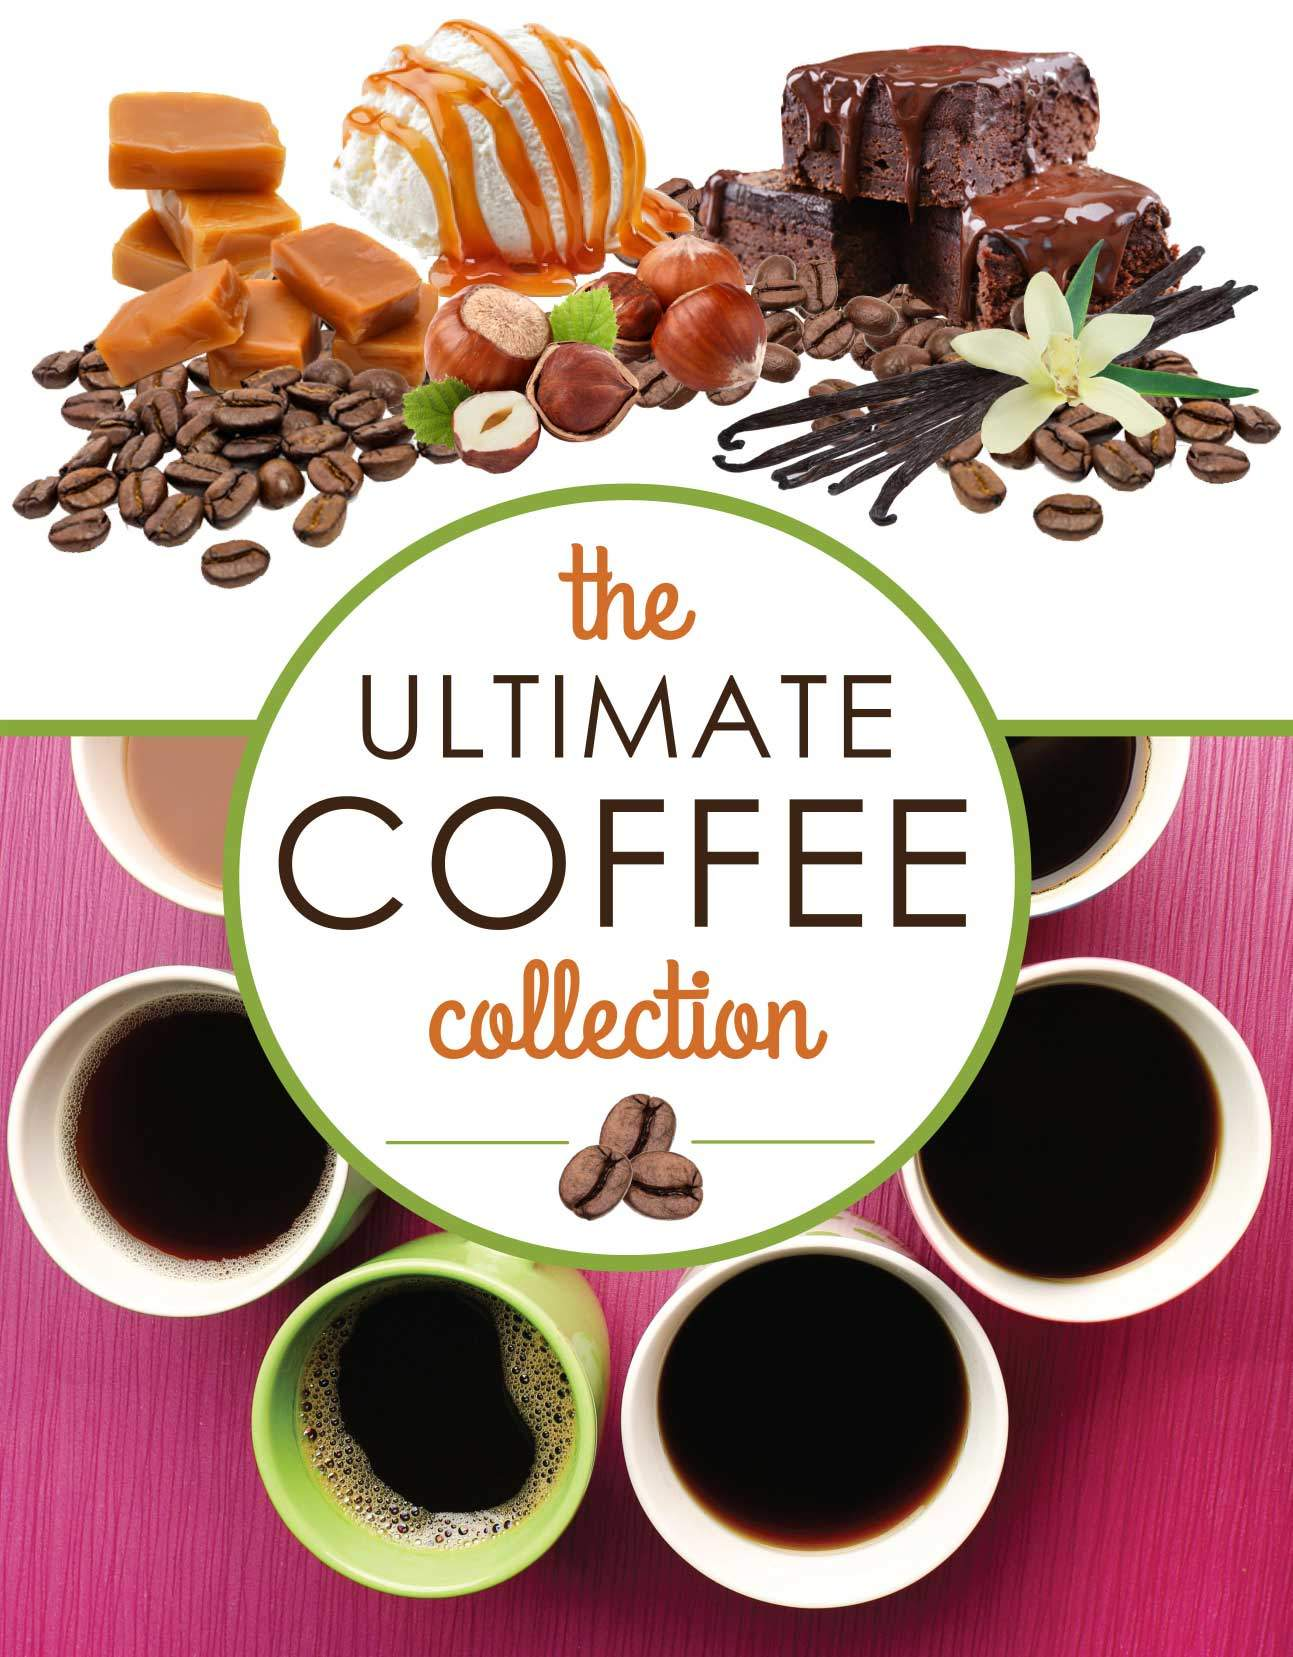 Ultimate Coffee collection fundraiser